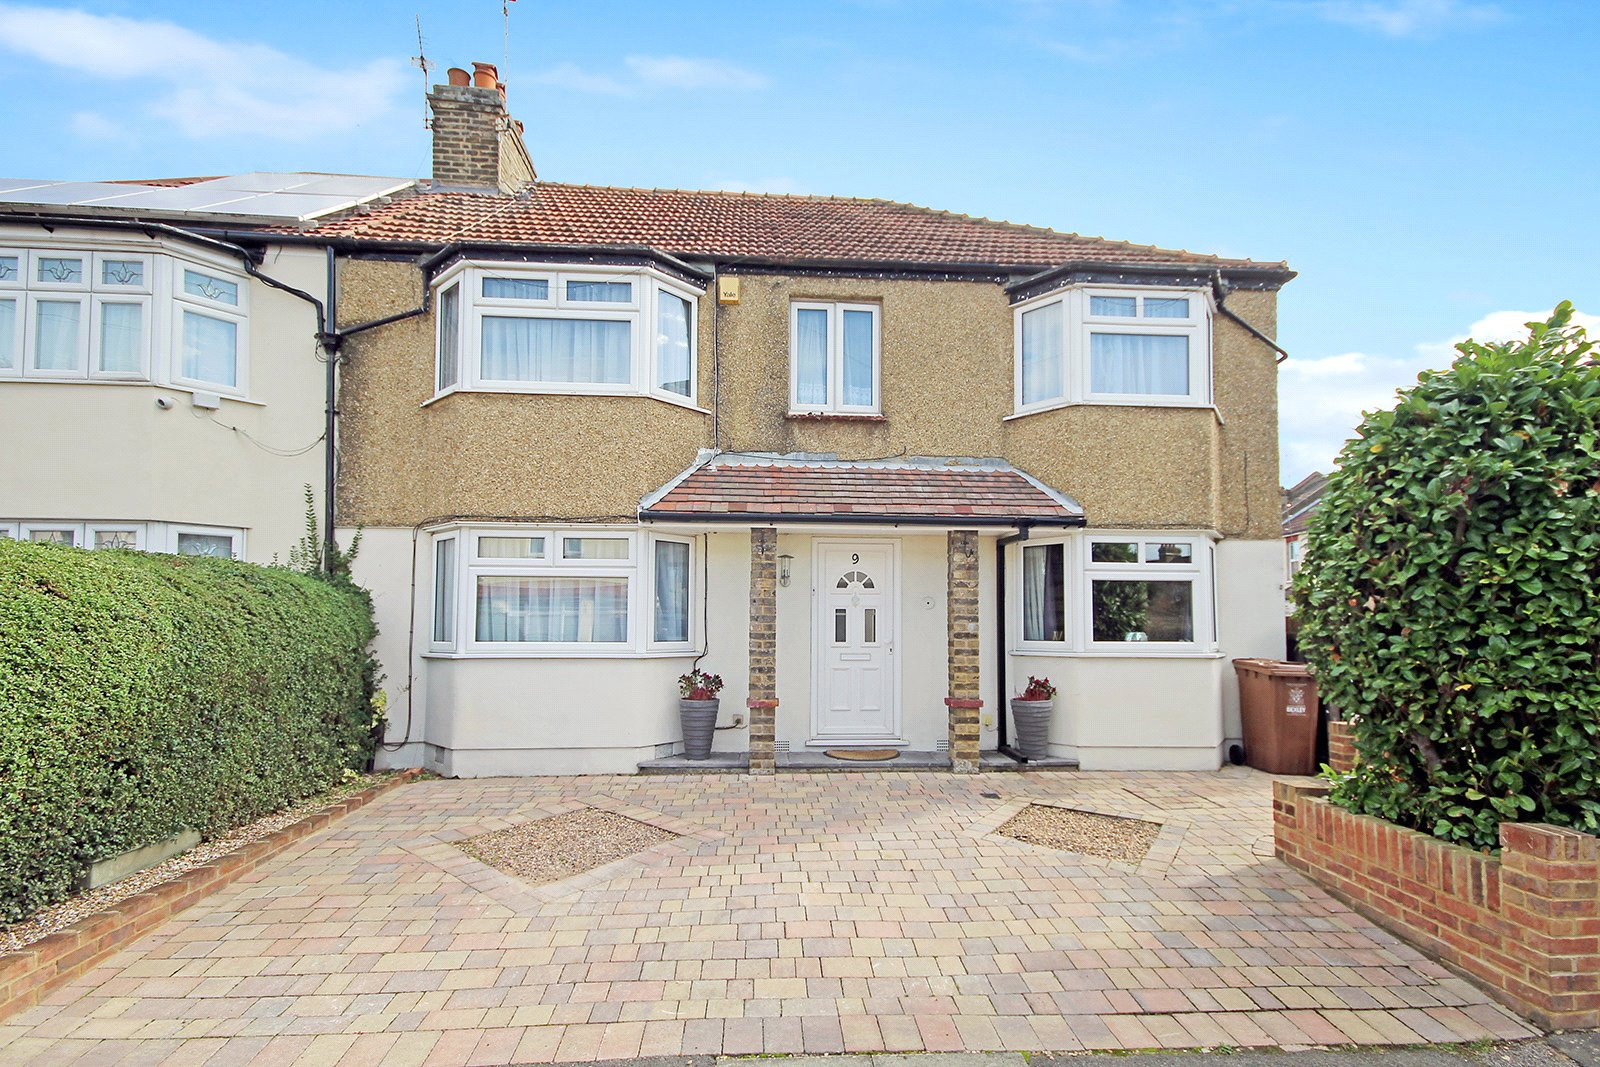 Orchard Road, Welling, Kent, DA16